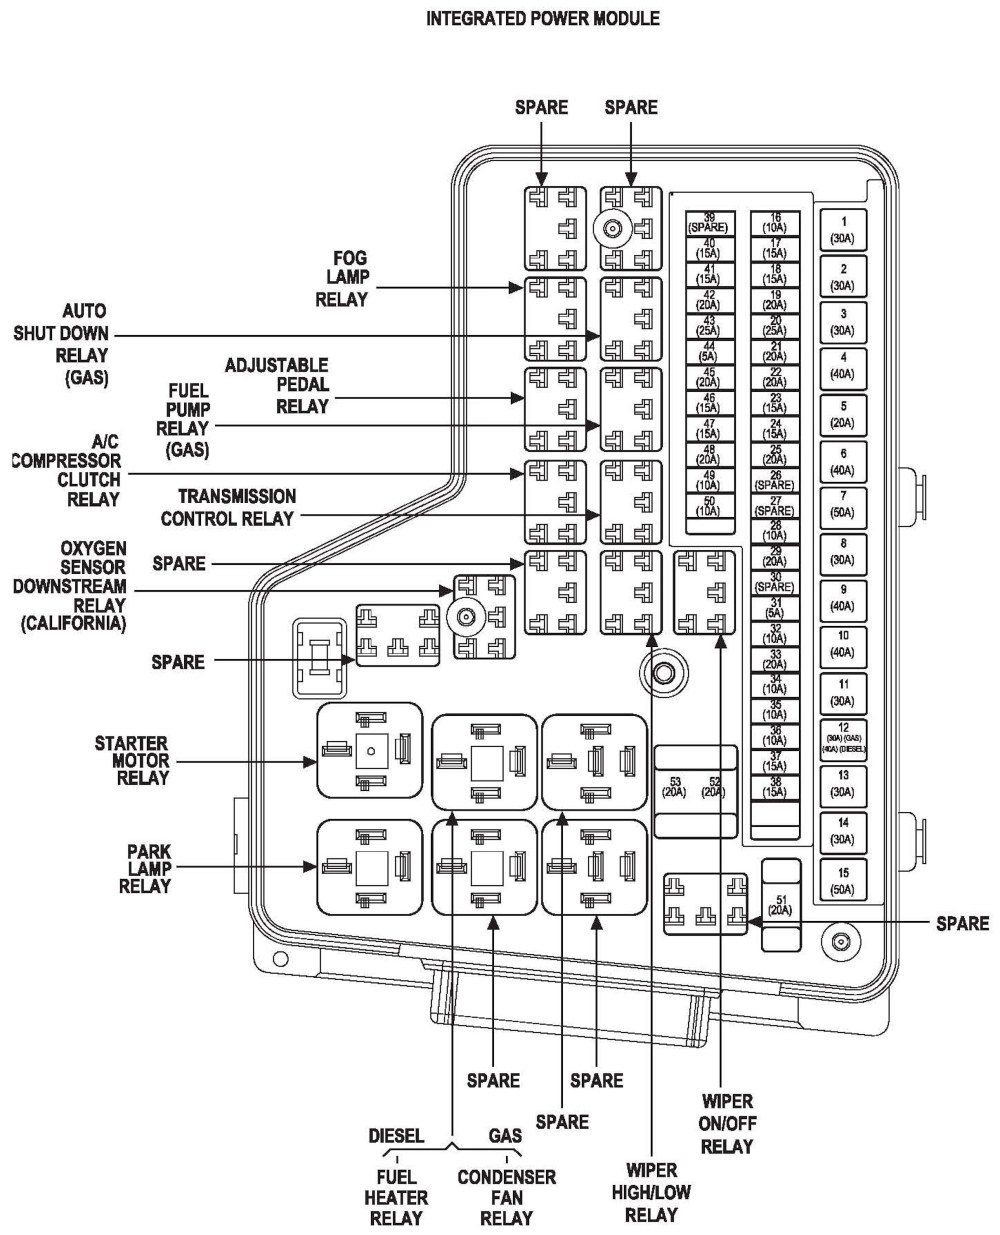 medium resolution of 1996 dodge ram 2500 fuse box diagram wiring diagram technic 1996 dodge ram van radio wiring